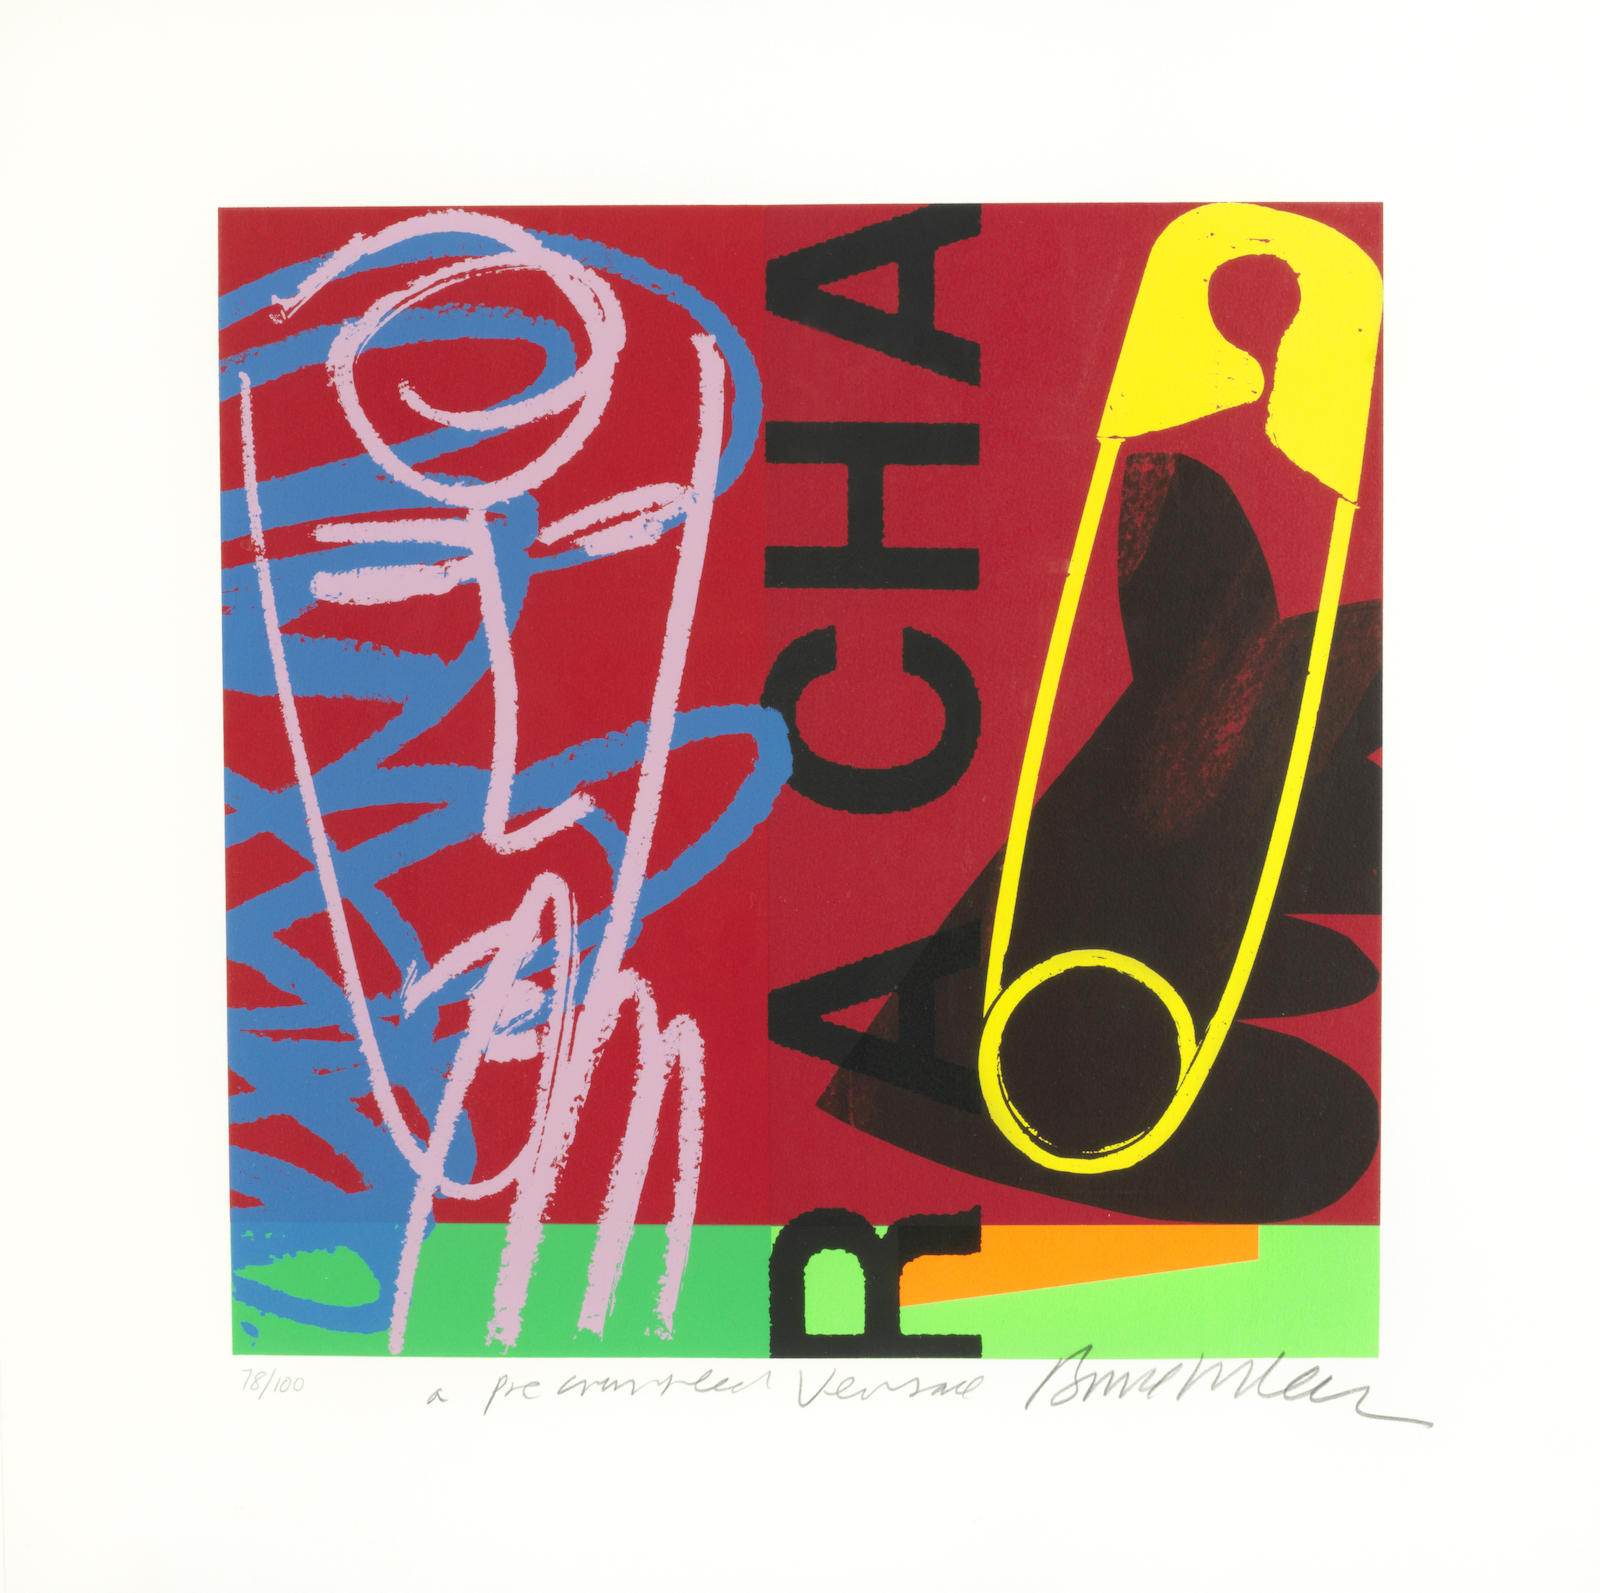 Bruce McLean-A Collection of Eight Works ('Cactus Head'; 'Spaghetti alle Vongole Twice'; 'Another Bad Night Out On Sausage Street'; 'Untitled (Irn Bru)'; 'Room for Manoeuvre: A Three Point Turn'; 'Room for Improvement - A Nouveau Niche'; 'Room for a view – A double glazed Patio Door'; 'Room for a Change – A pre-crumpled Versace')-